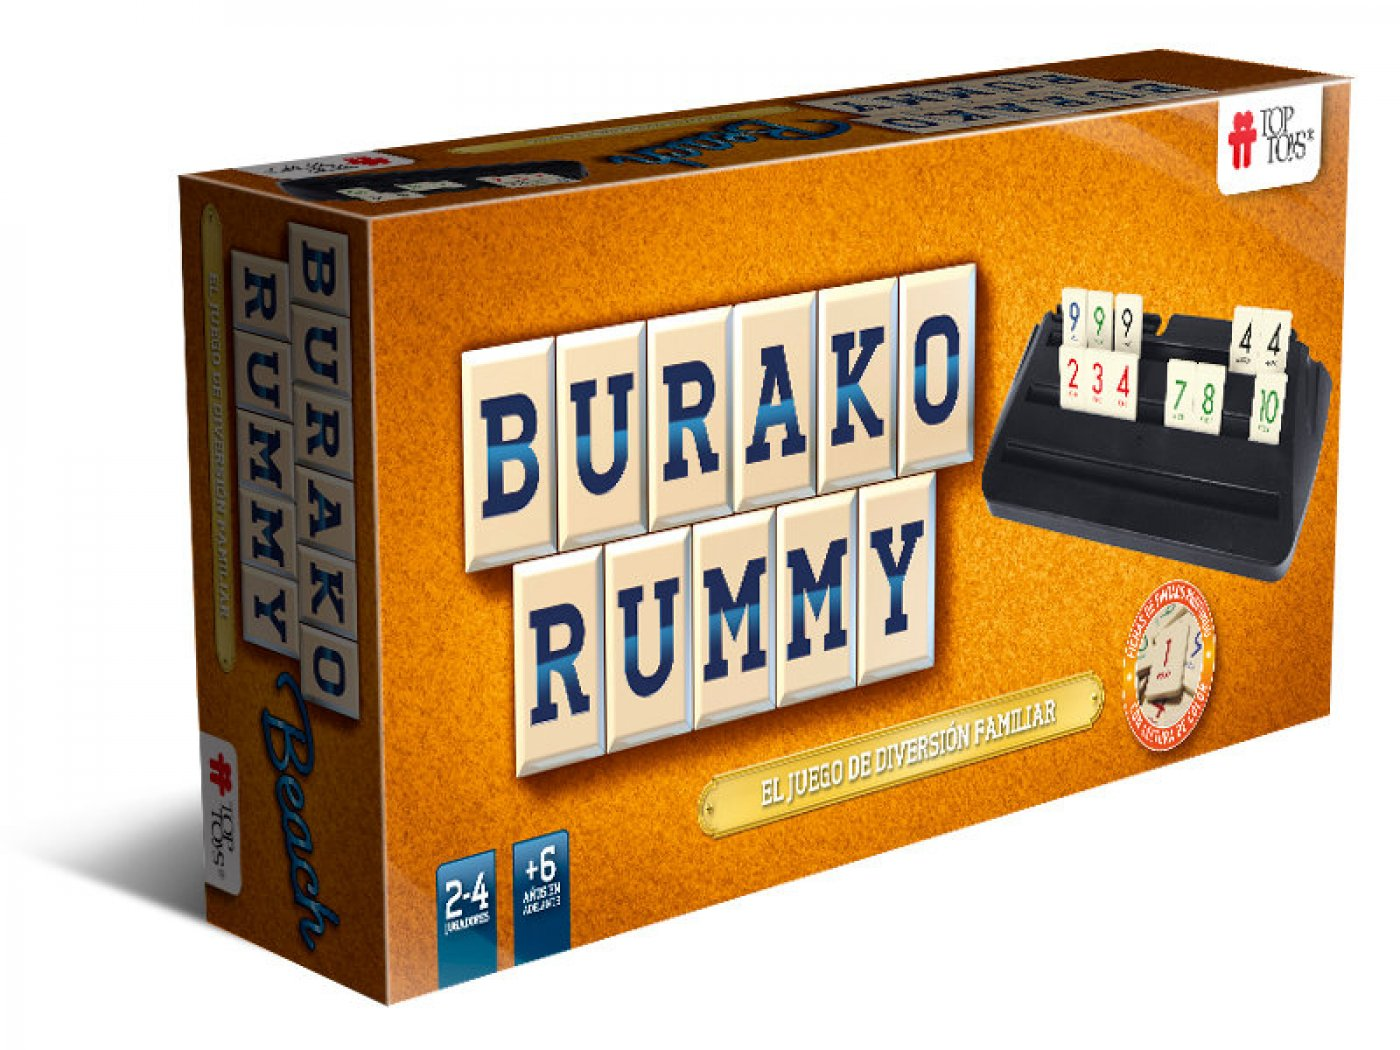 Burako Rummy de TopToys - Version Beach